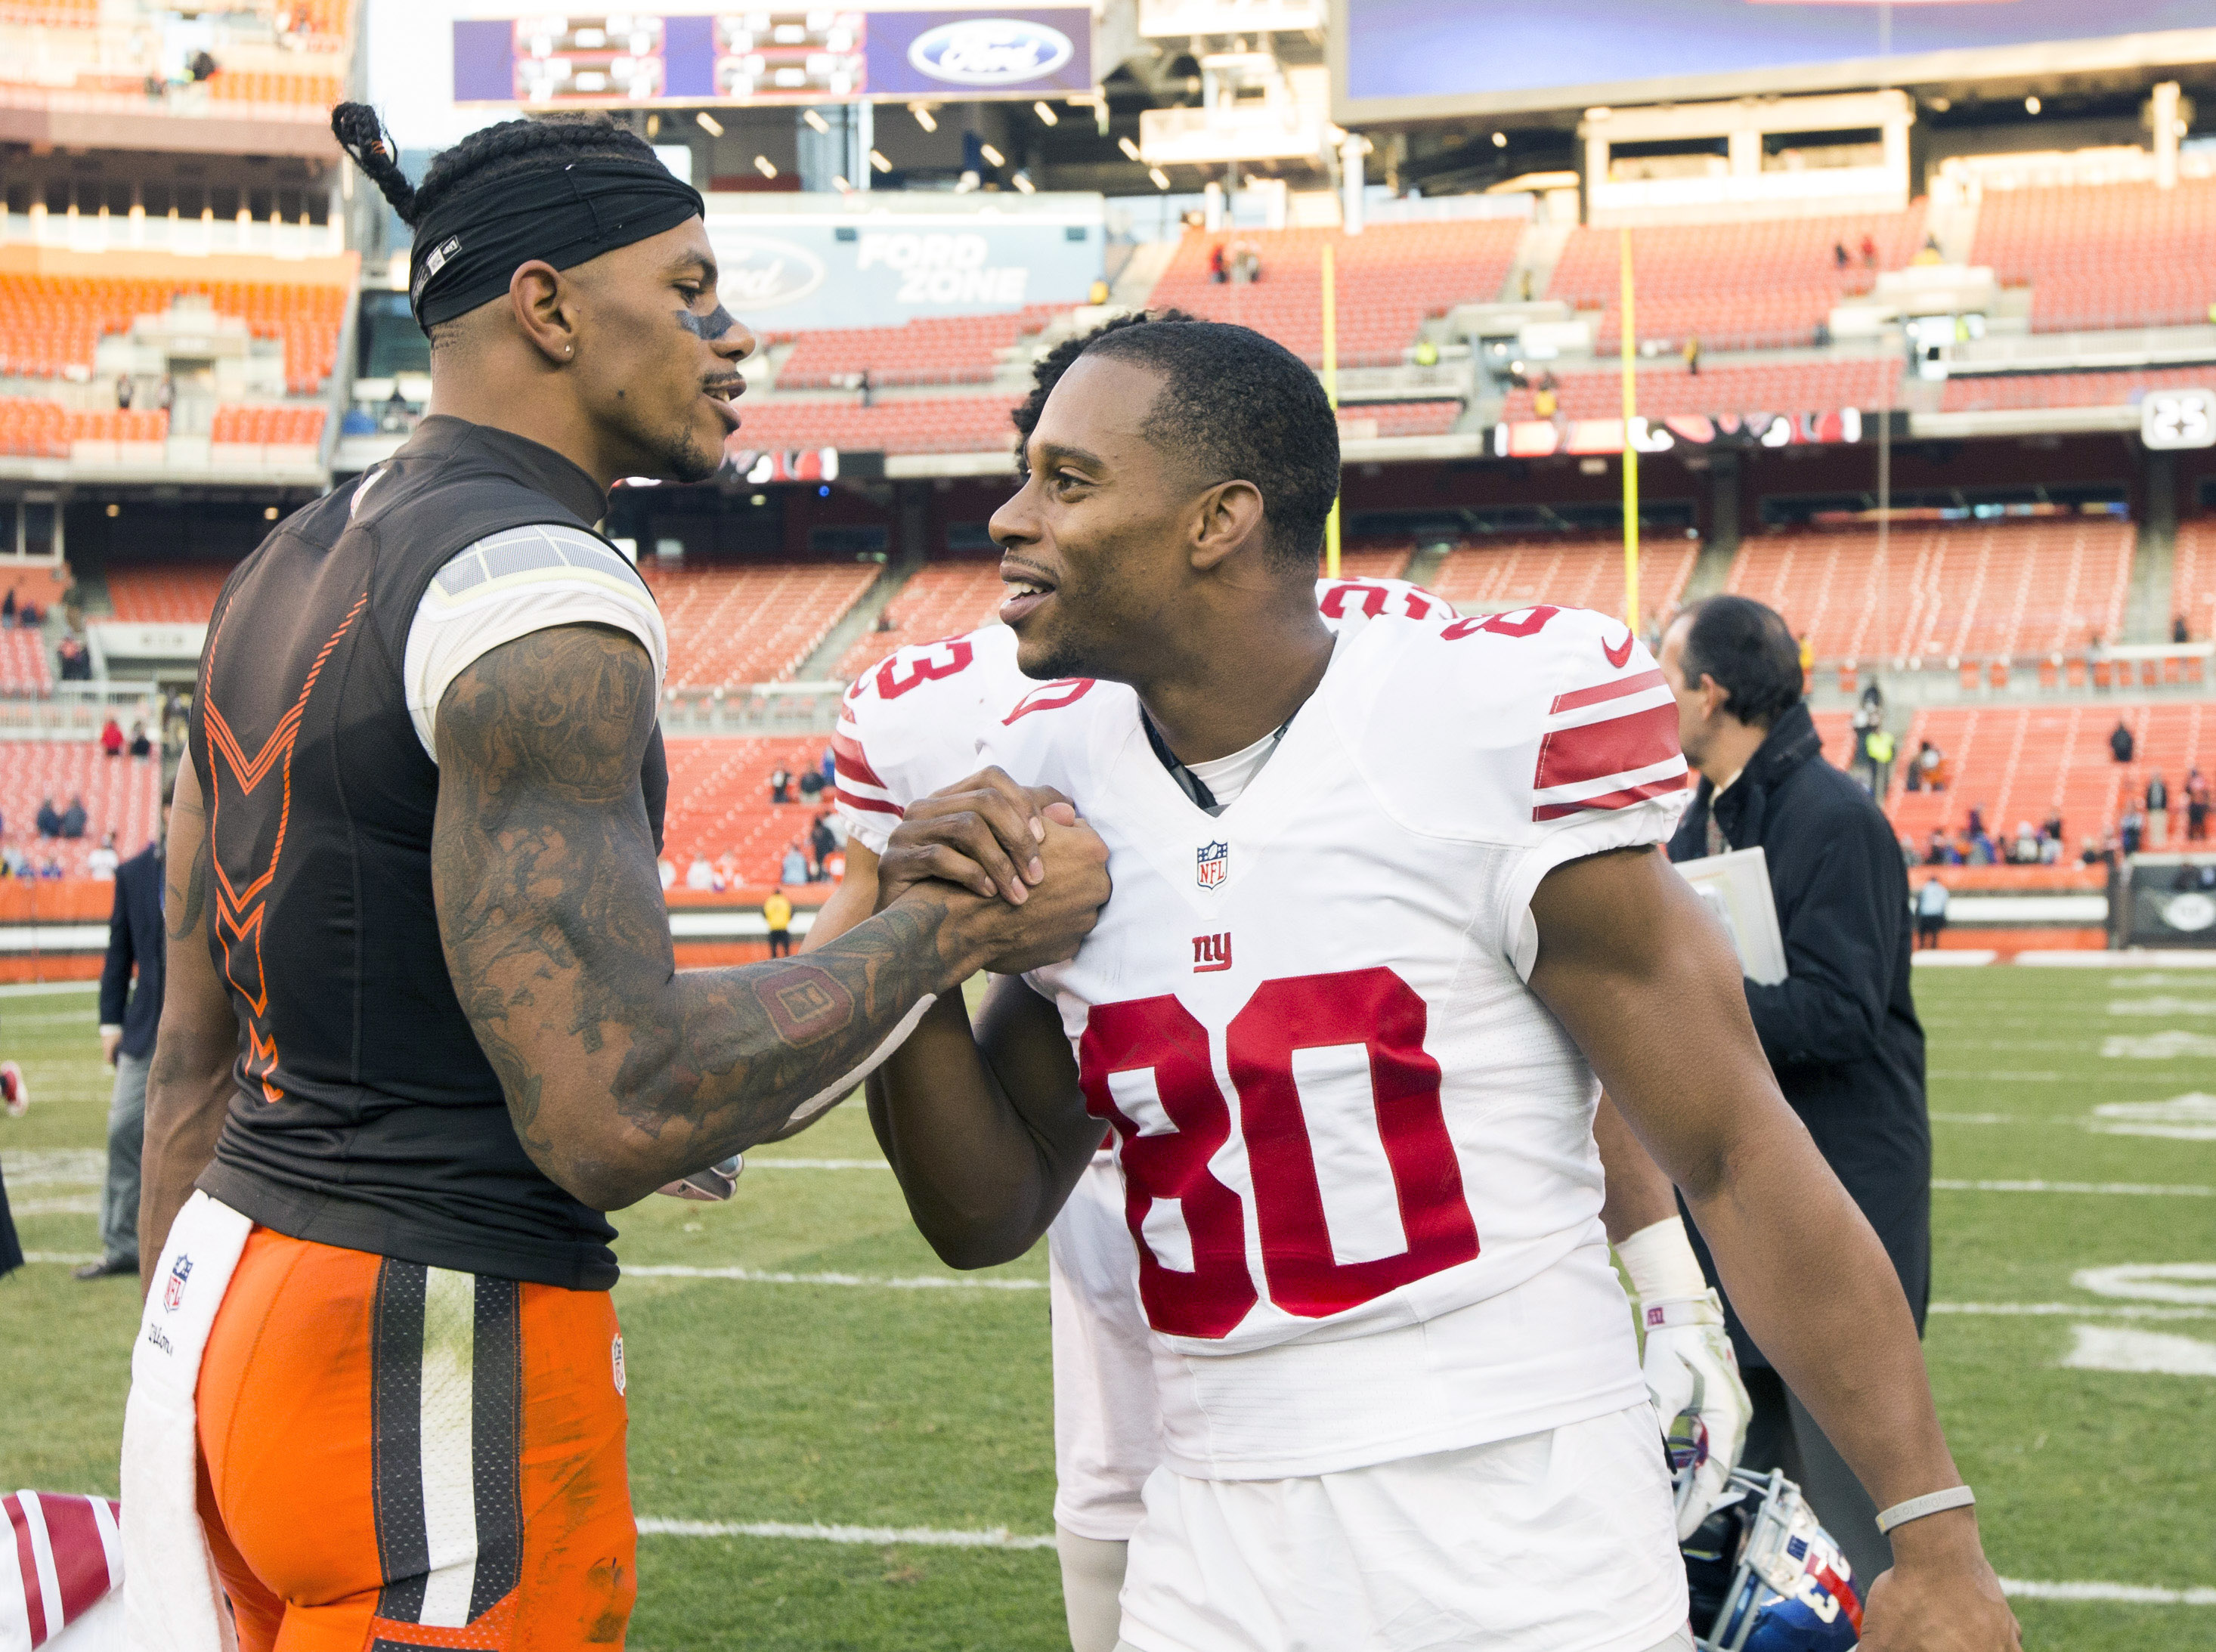 9709242-nfl-new-york-giants-at-cleveland-browns